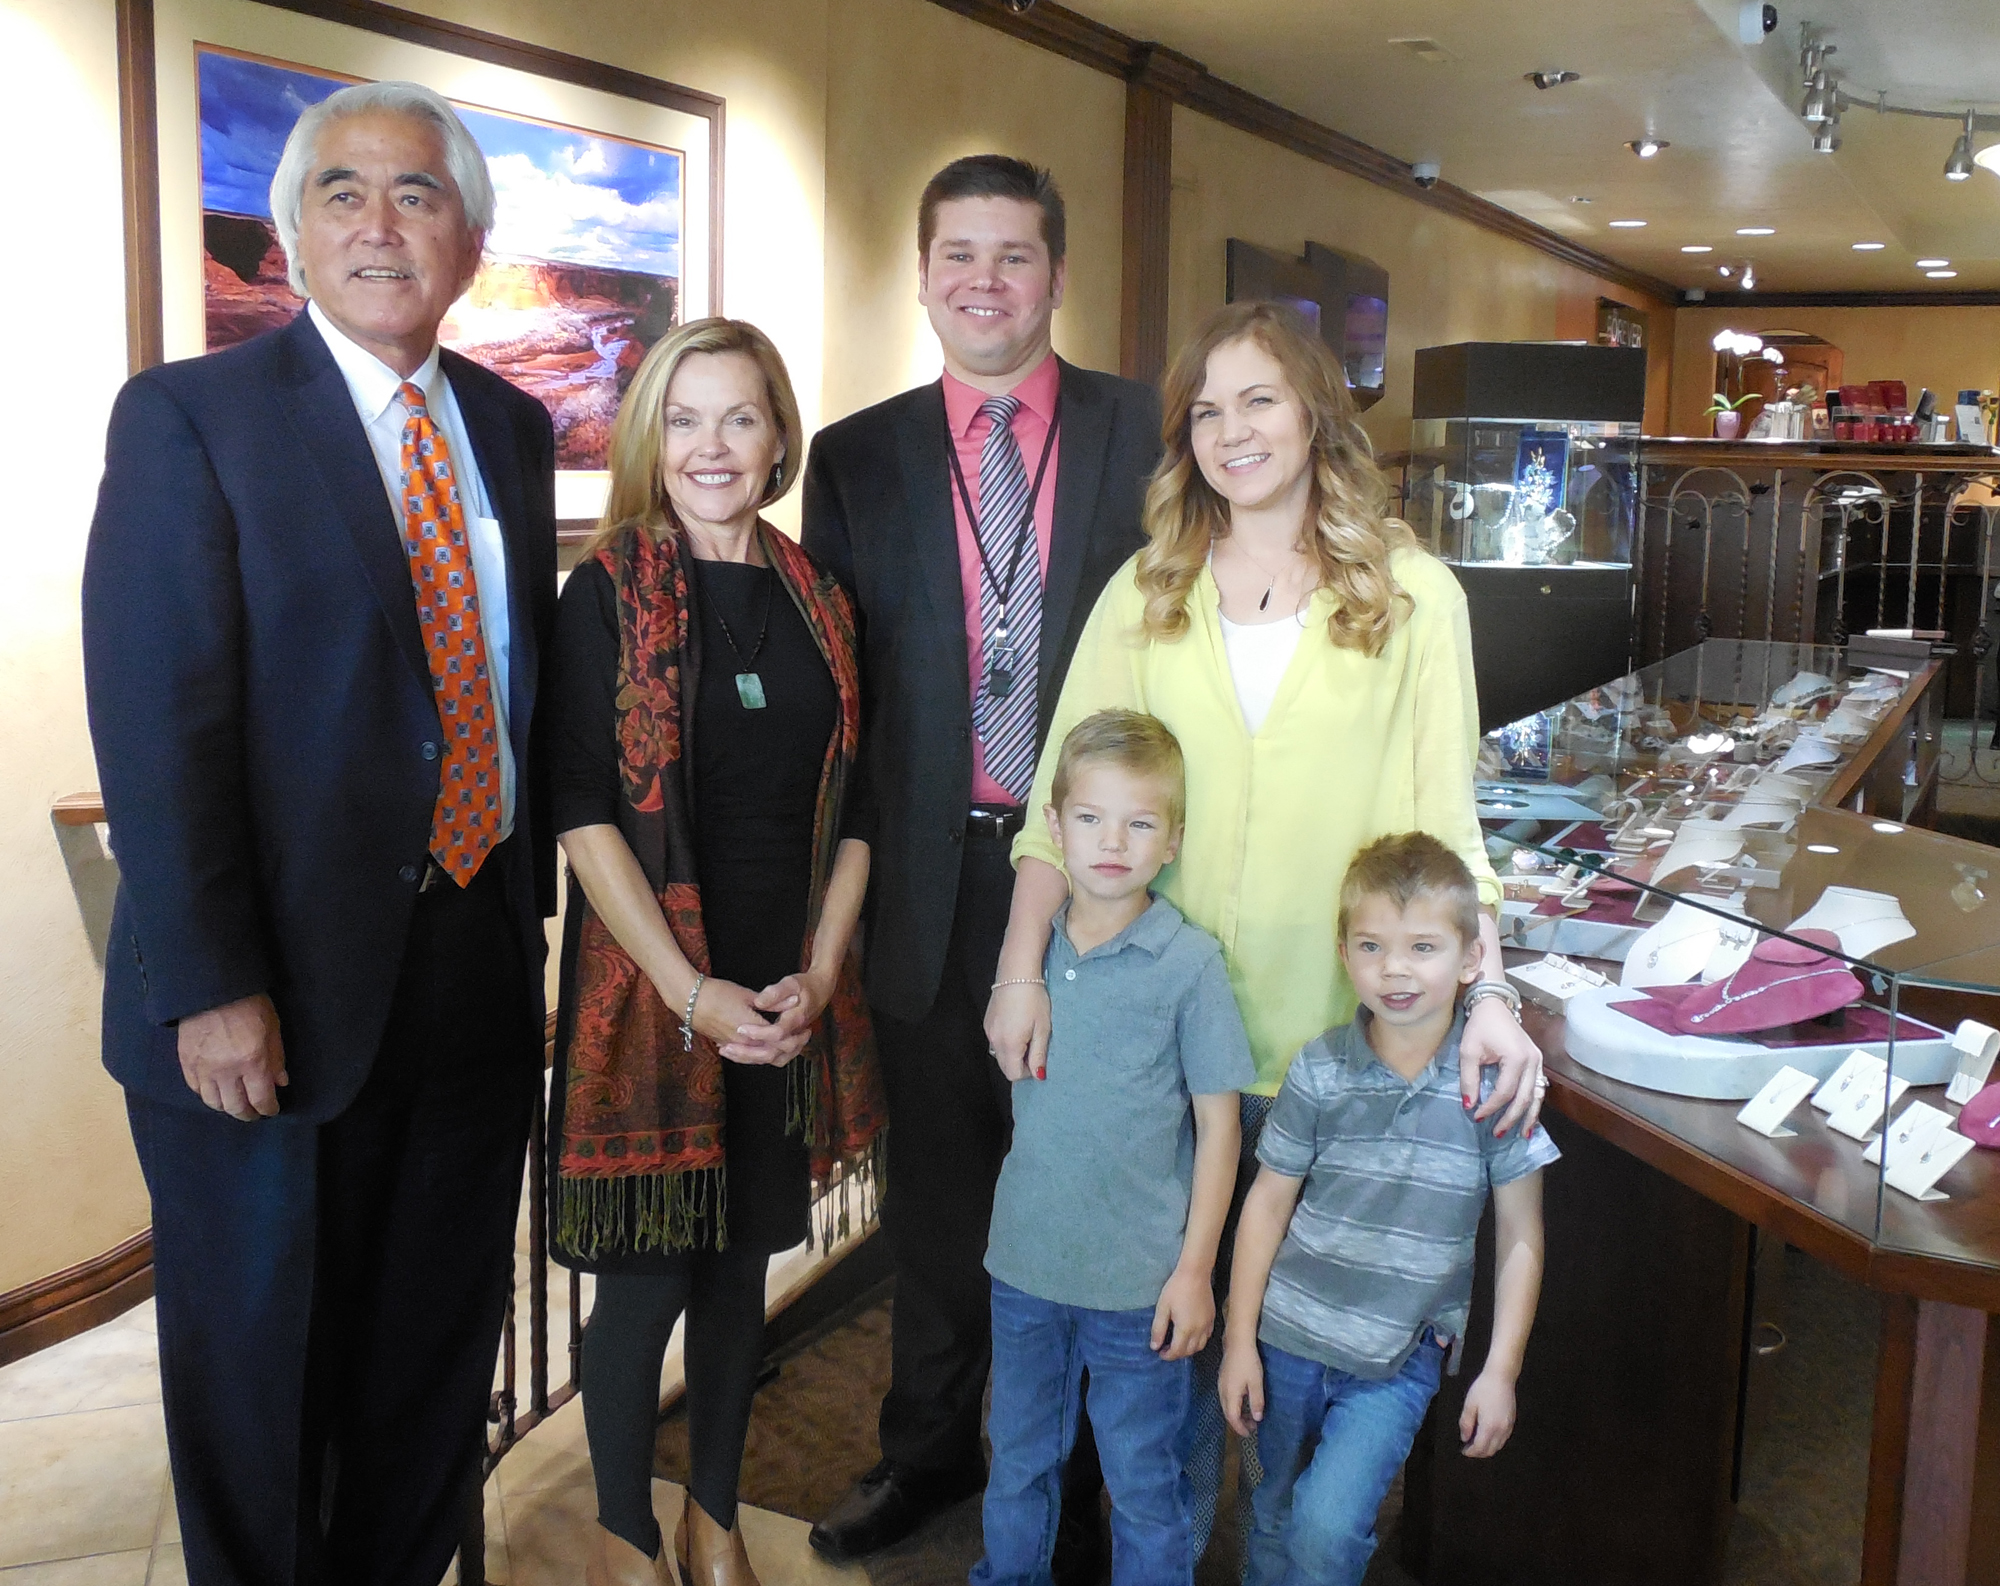 L-R: Stan Nakano, Betsy Marky, Jeremy Young, Megan Young and the Young's two sons in Forever Young Fine Jewelers, St. George, Utah, Nov. 17, 2016 | Photo by Julie Applegate, St. George News